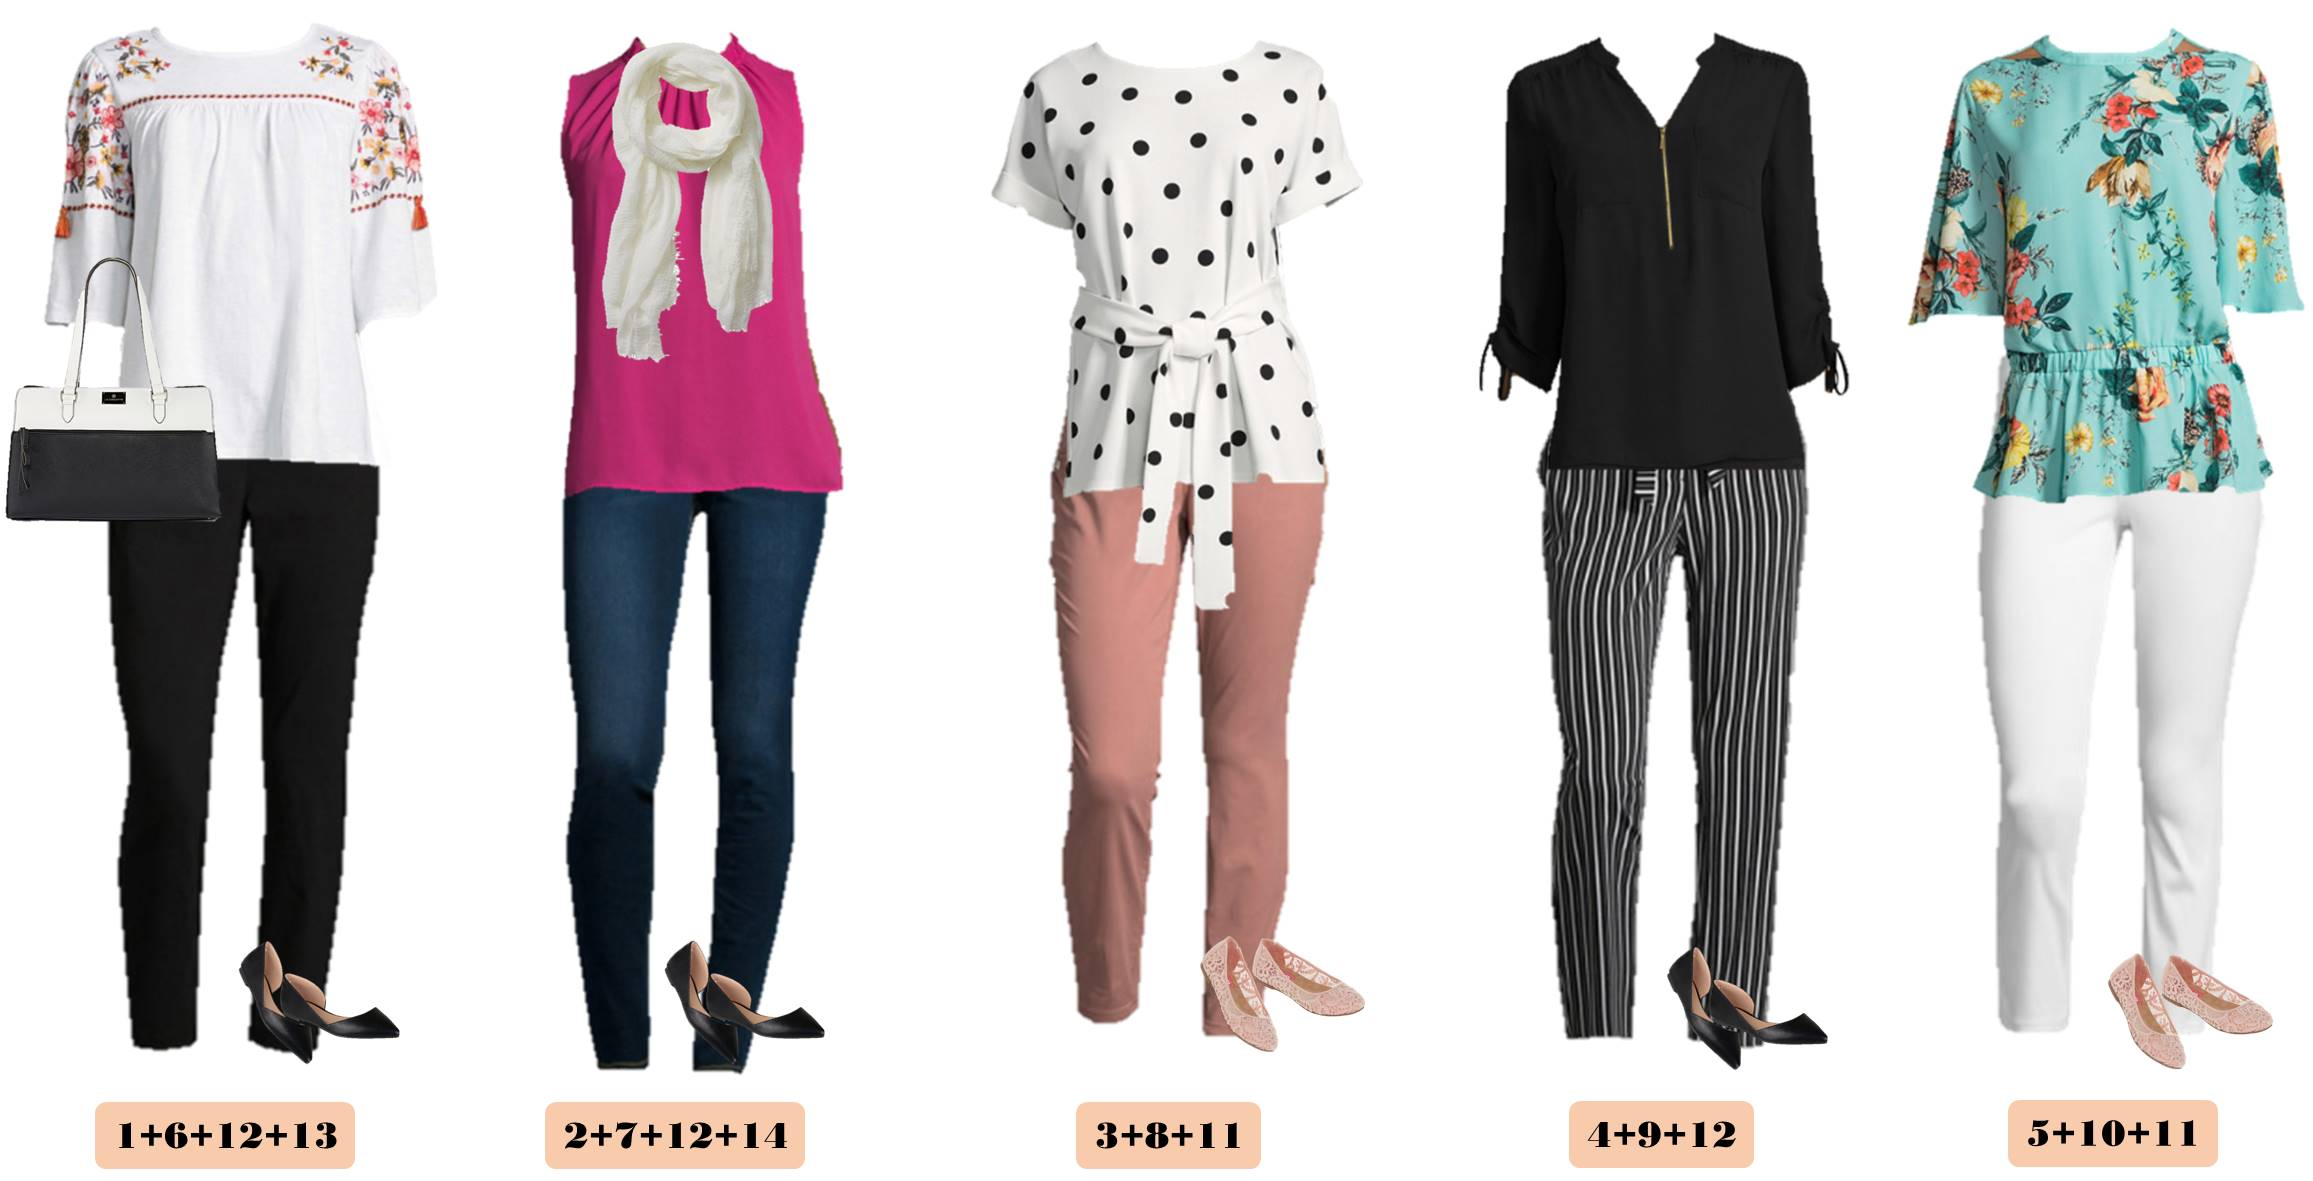 cute spring outfits from JCPenney